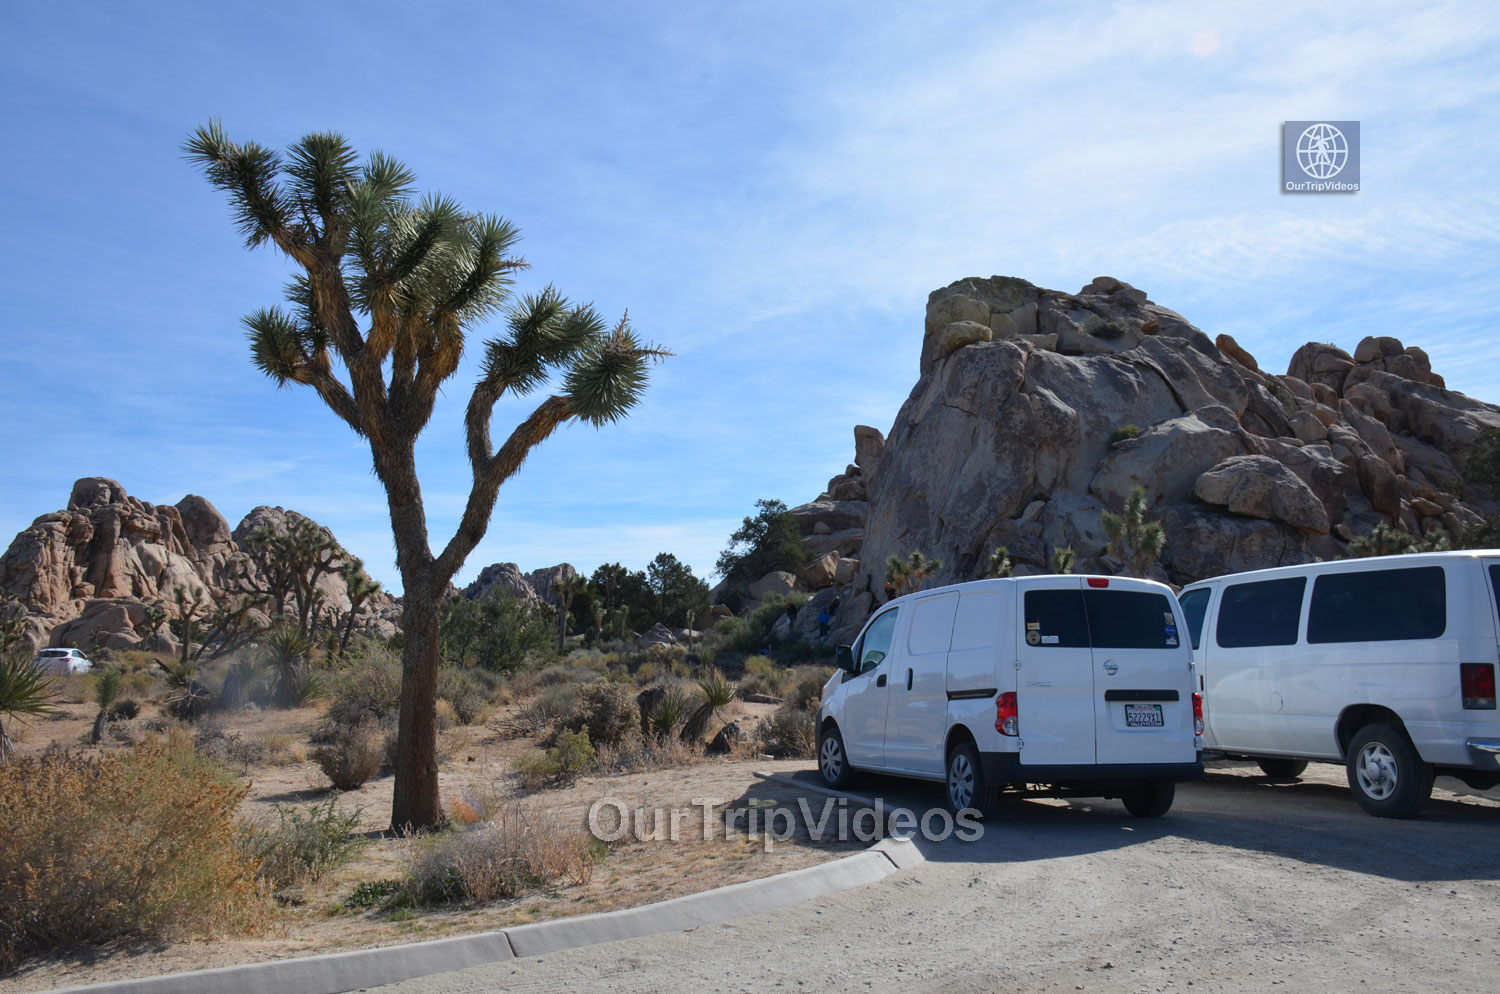 Joshua Tree National Park, Joshua Tree, CA, USA - Picture 24 of 25